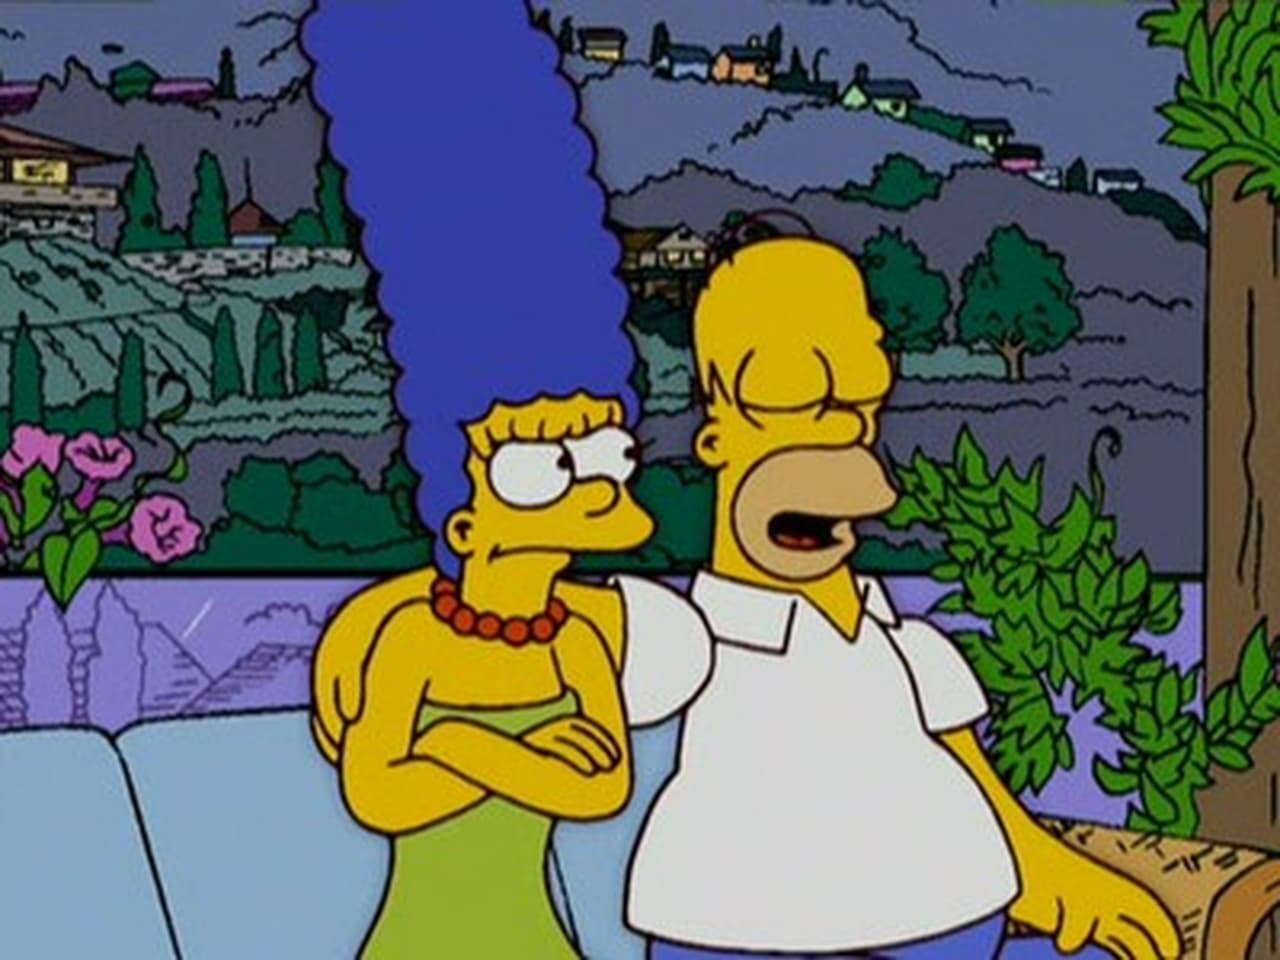 simpsons episode where homer and marge meet